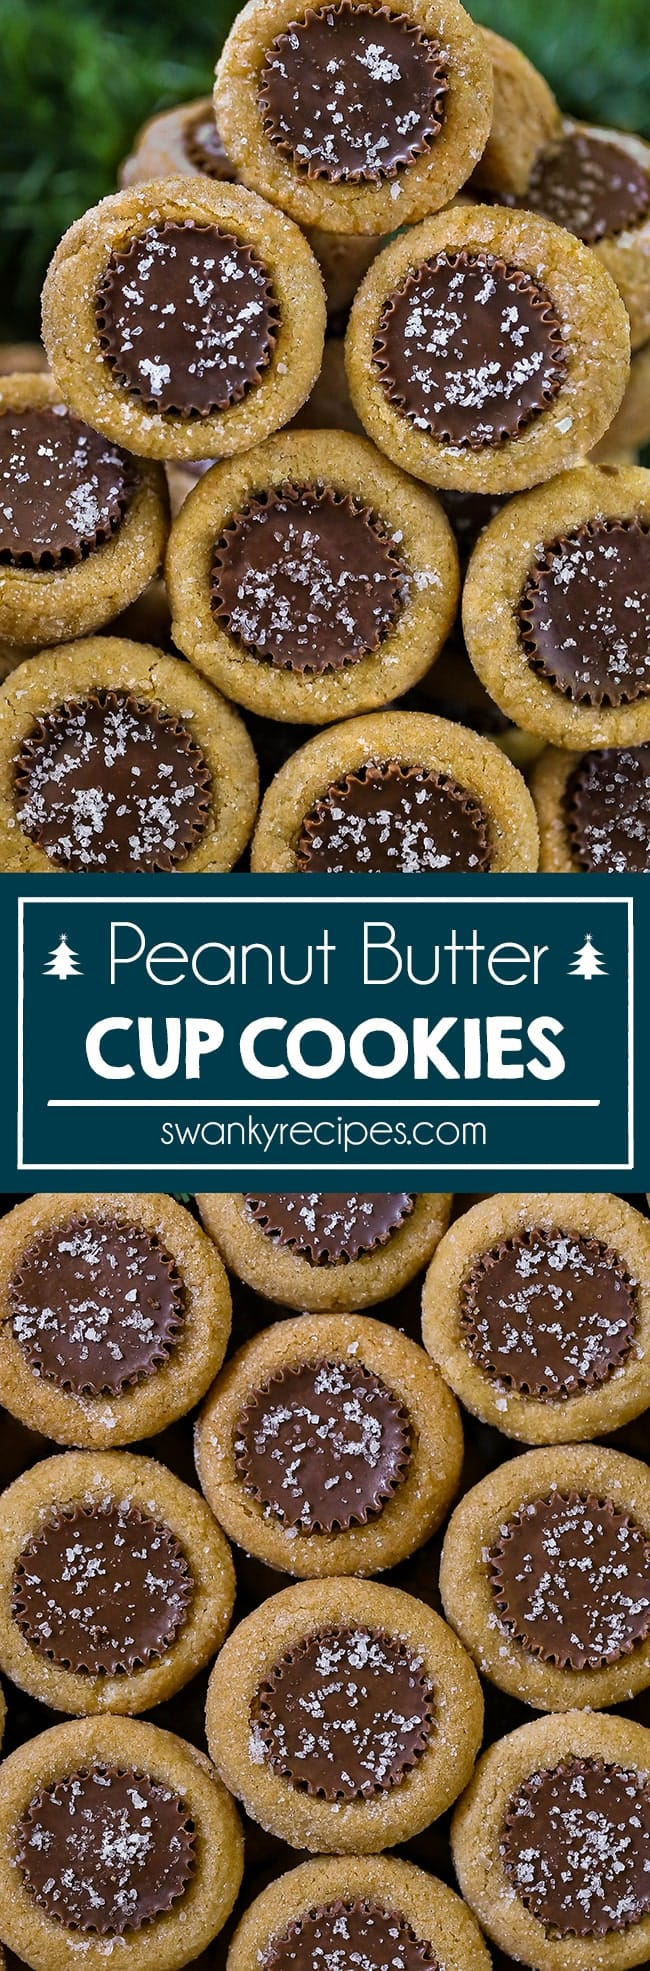 Old-fashioned Mini Peanut Butter Cup Cookies with chocolate covered peanut butter candy stuffed into the center of the cookie dough.